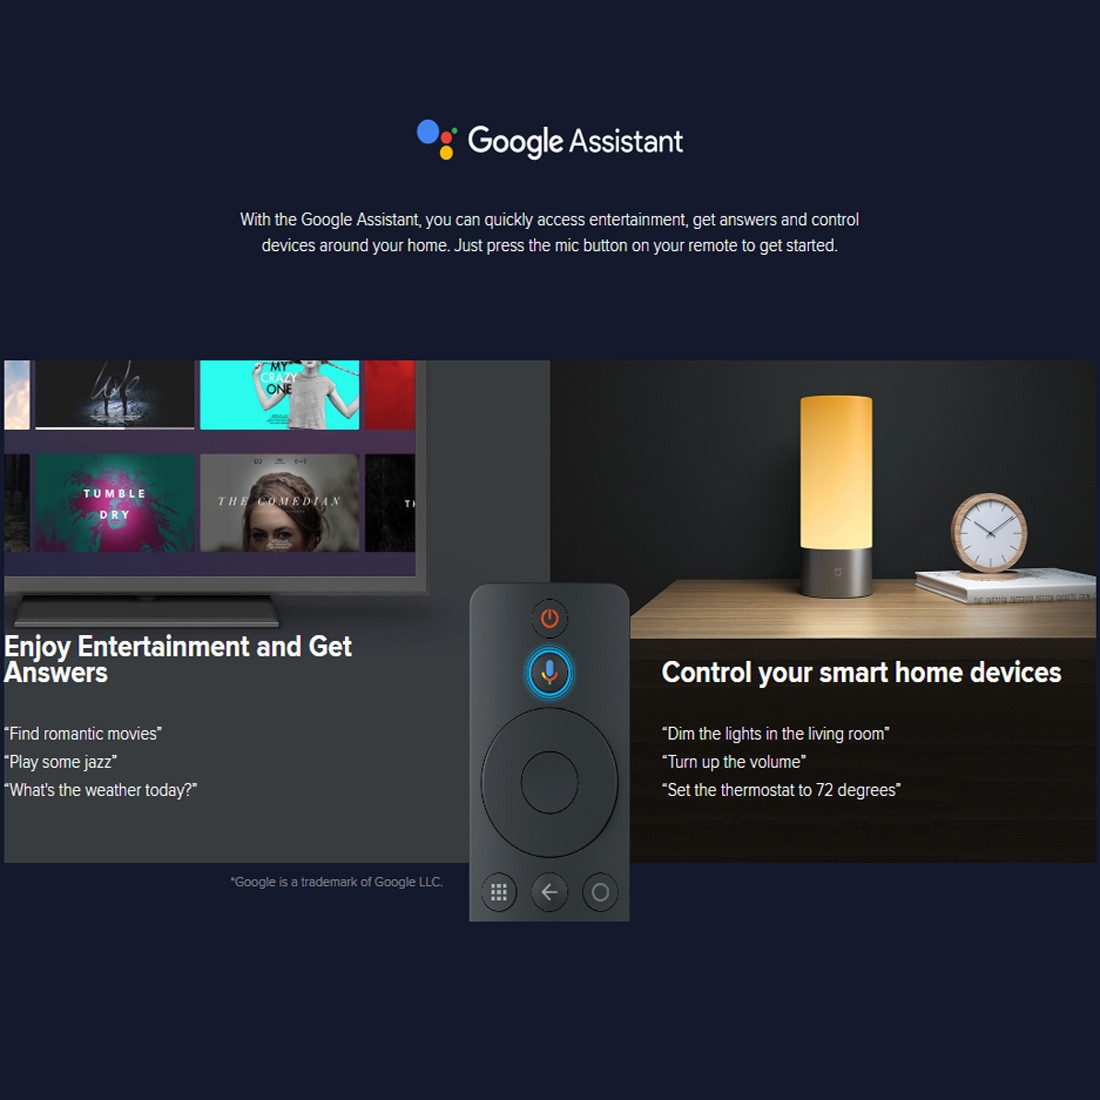 XIAOMI Mi Box S 4K HDR Android TV with Google Assistant Remote